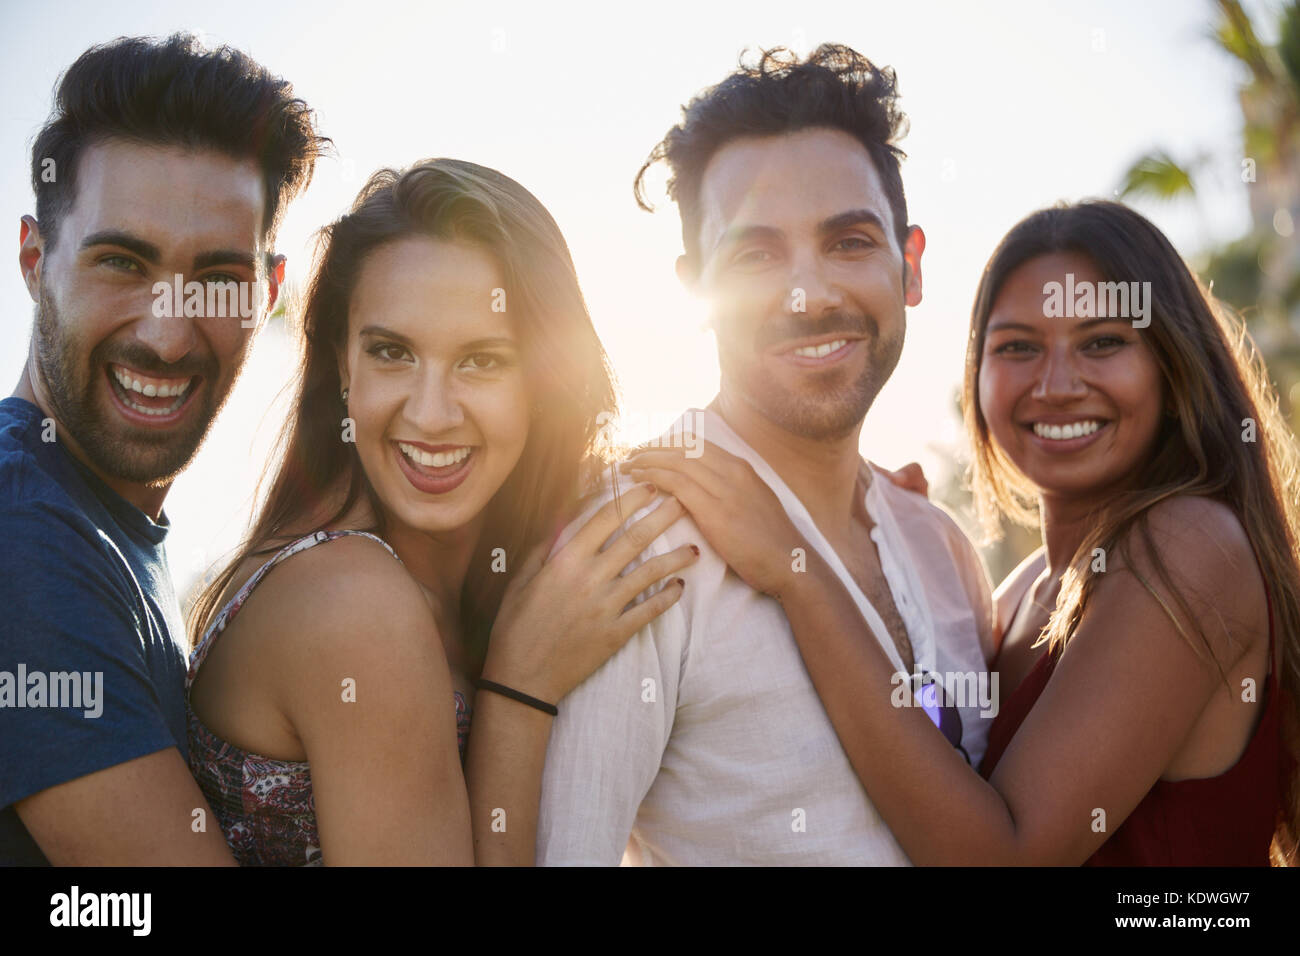 Portrait of four happy friends standing together outside in sunlight - Stock Image